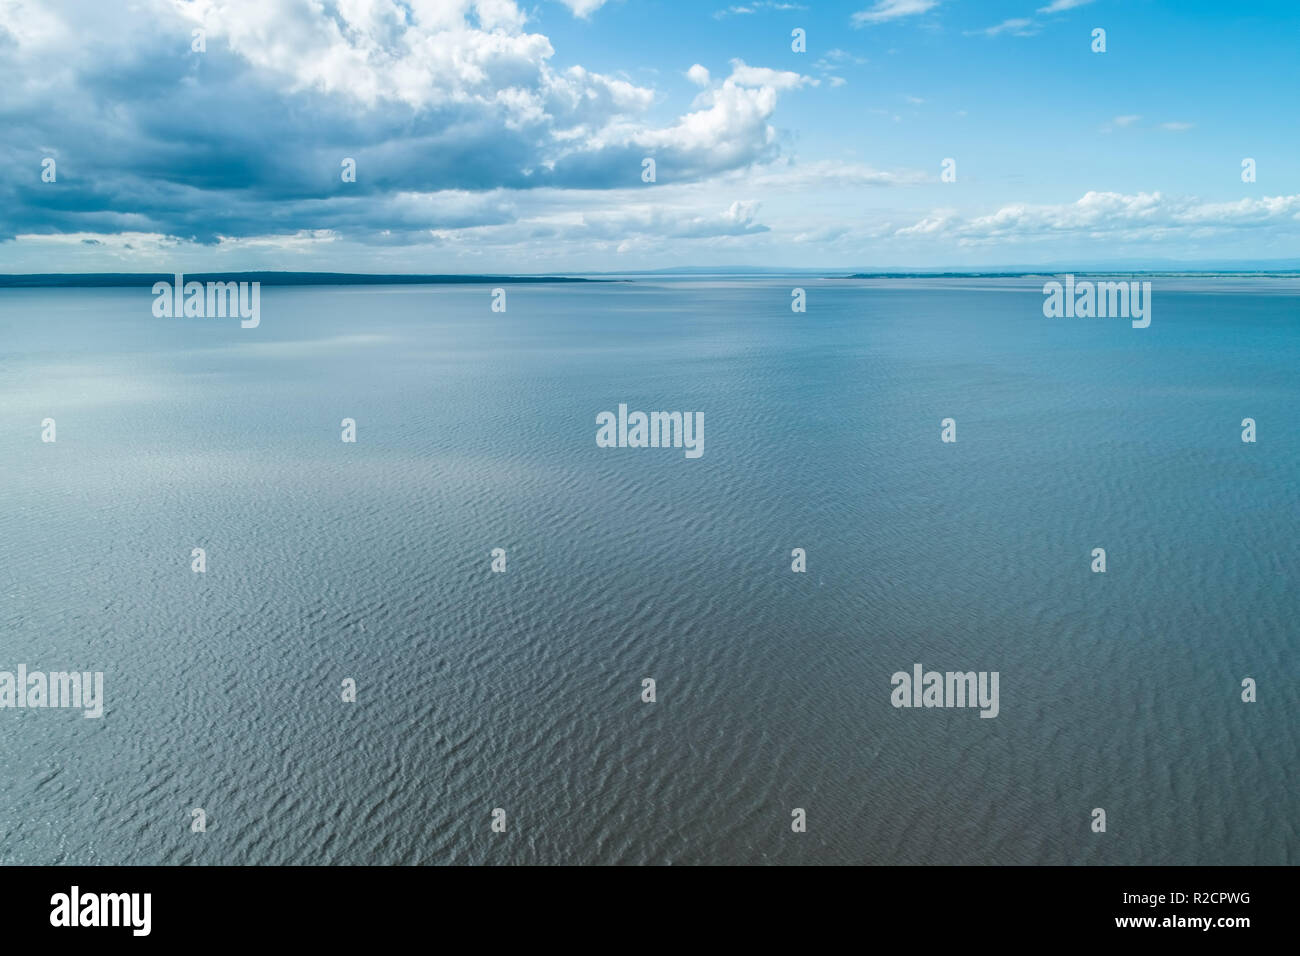 Minimalist landscape of water ripples and white clouds - Stock Image